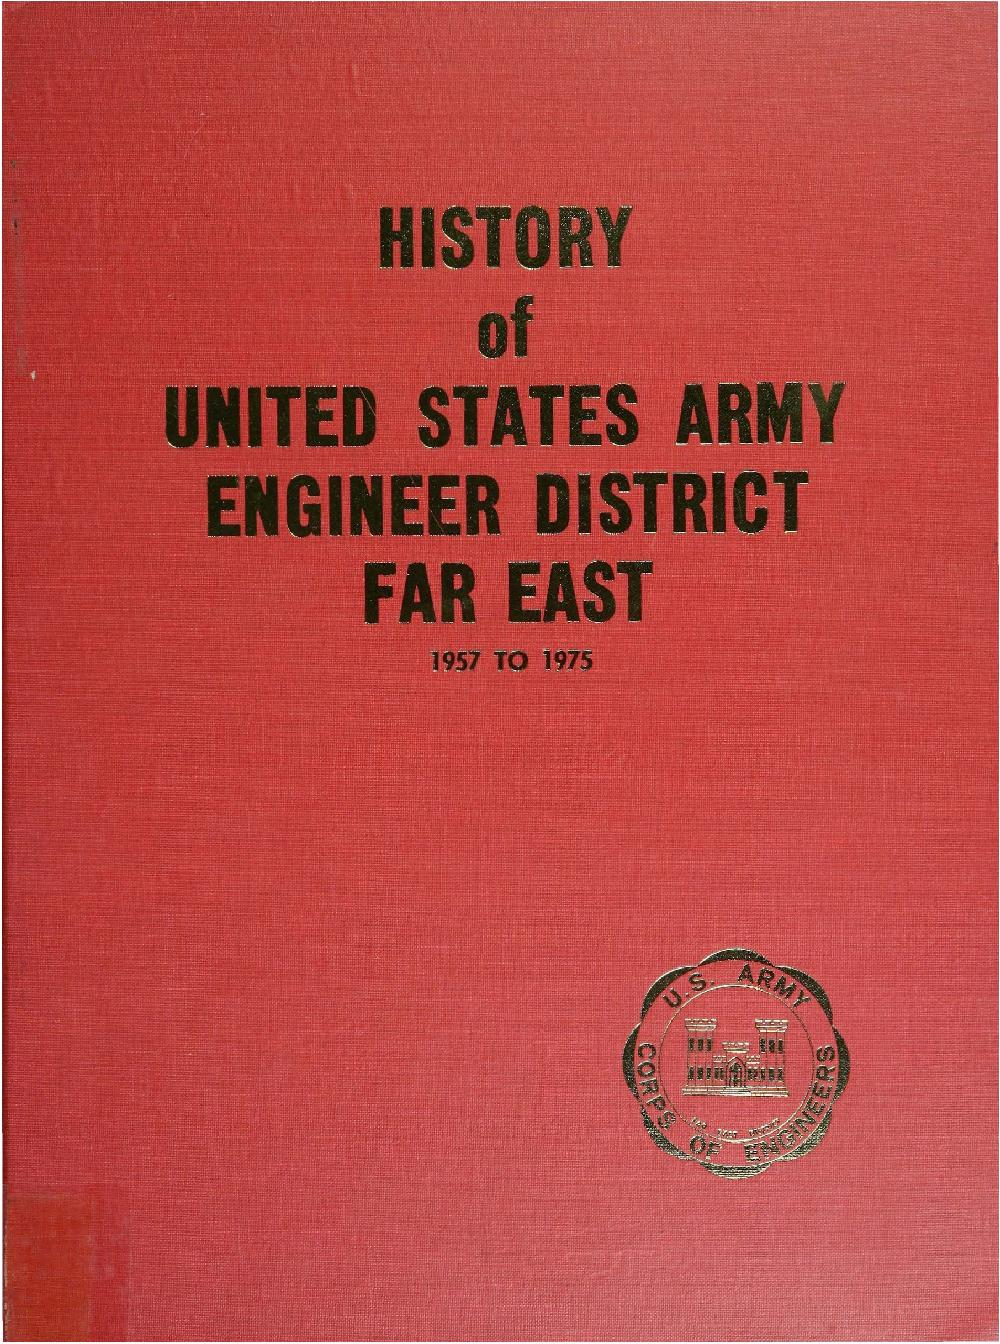 Yosha bunko history of the united states army engineer district far east 1957 1975 fandeluxe Images